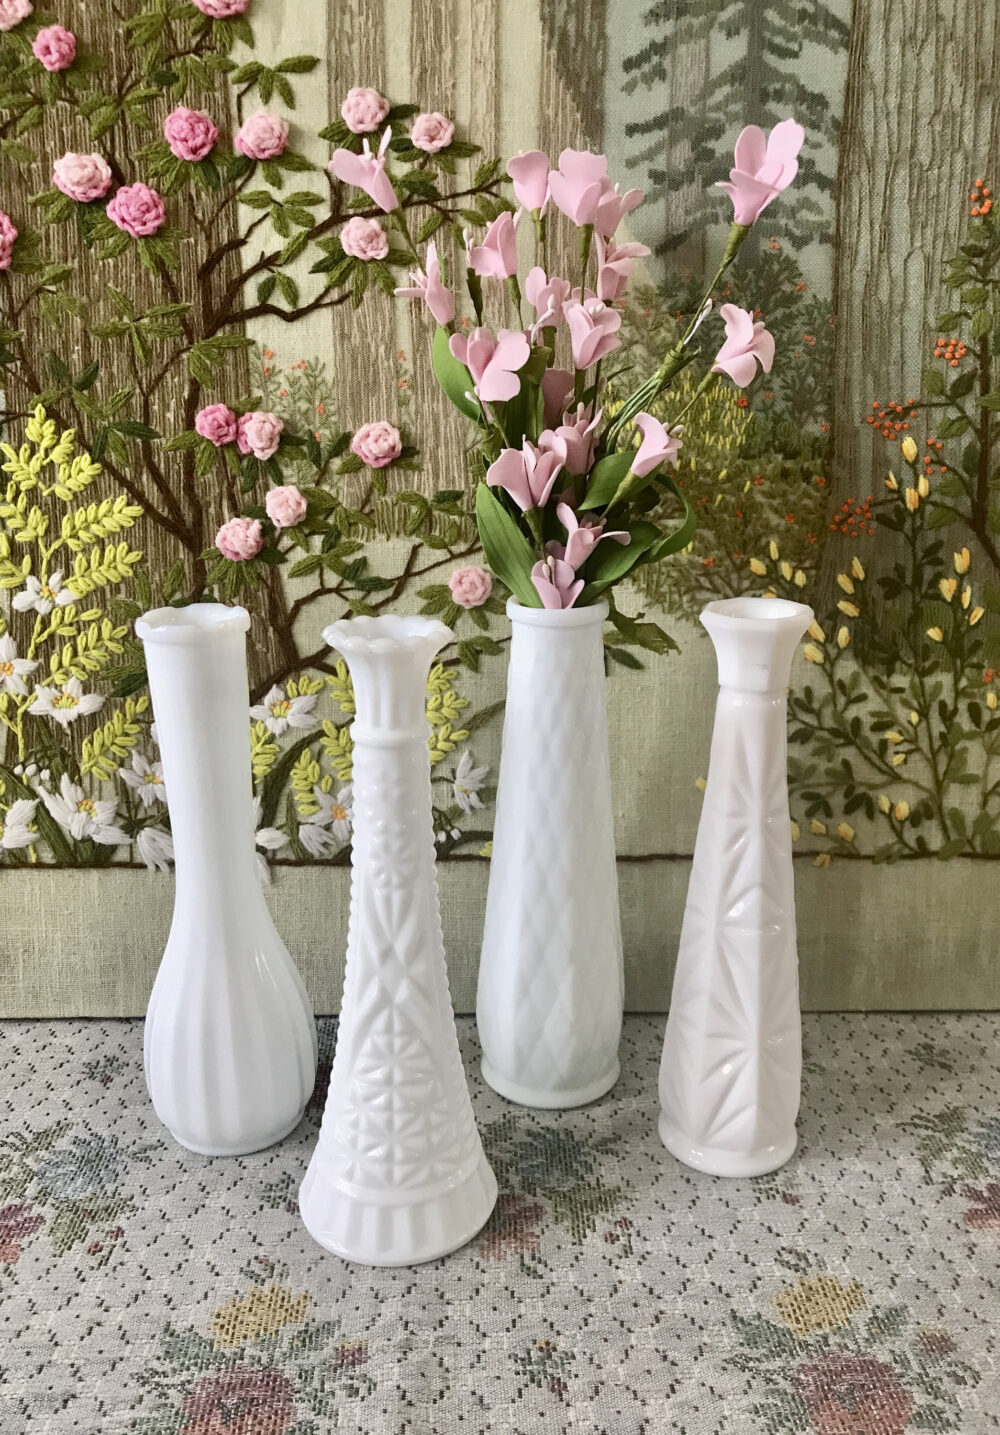 Milk Glass Vases For Centerpiece Wedding Bud Vase Lot White Bulk Flowers Old